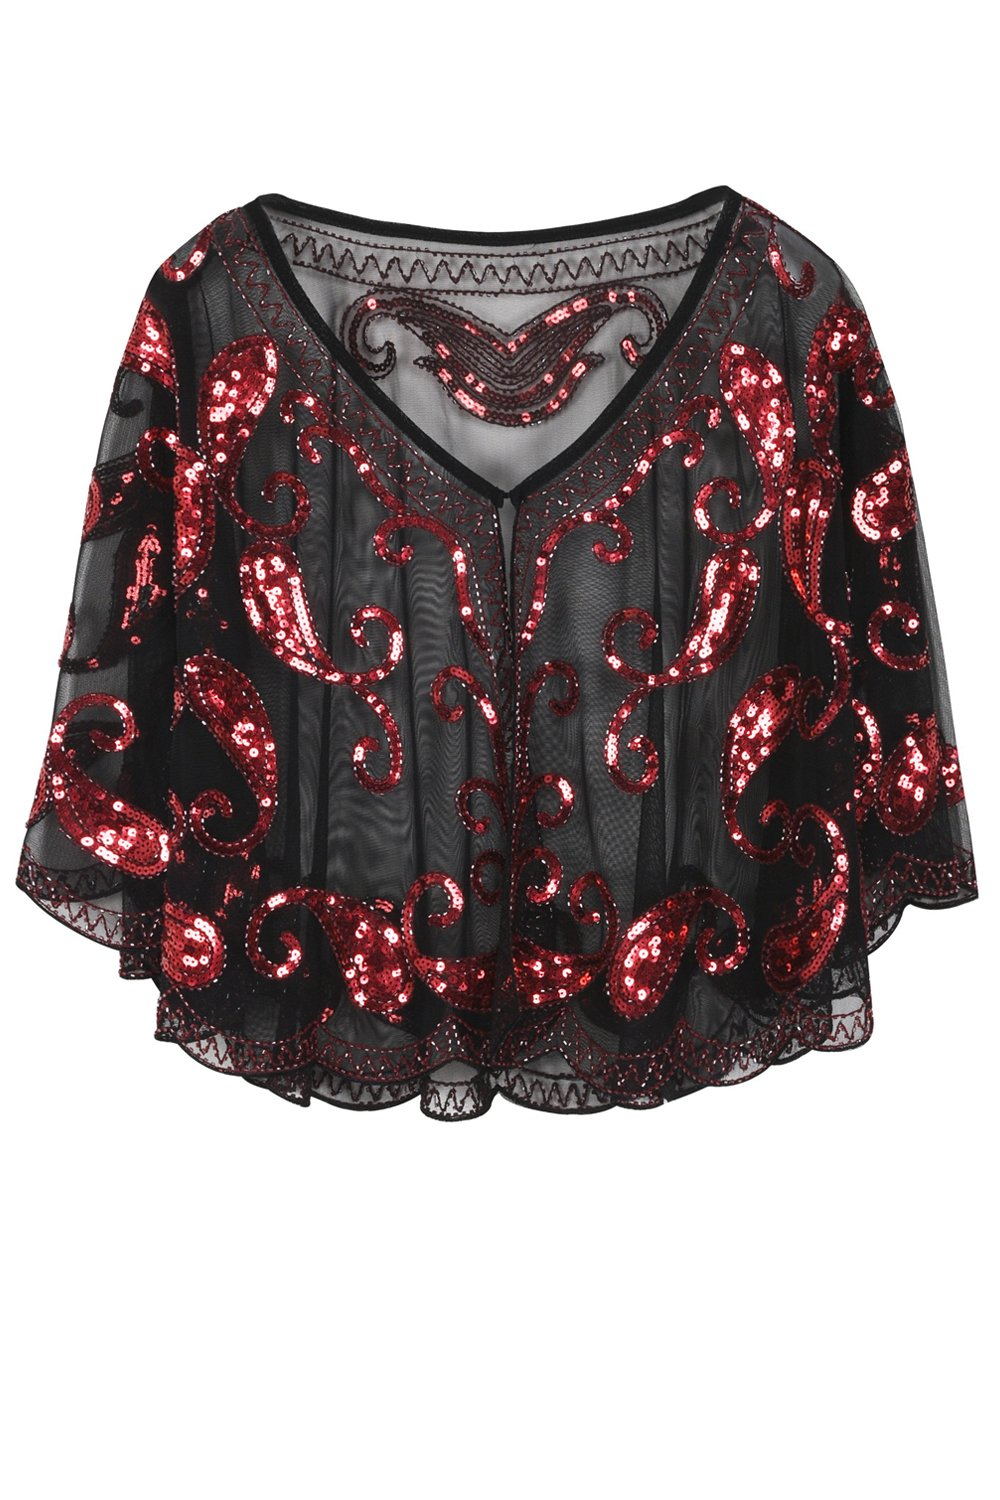 1920s Red Glitter Sequins Cape